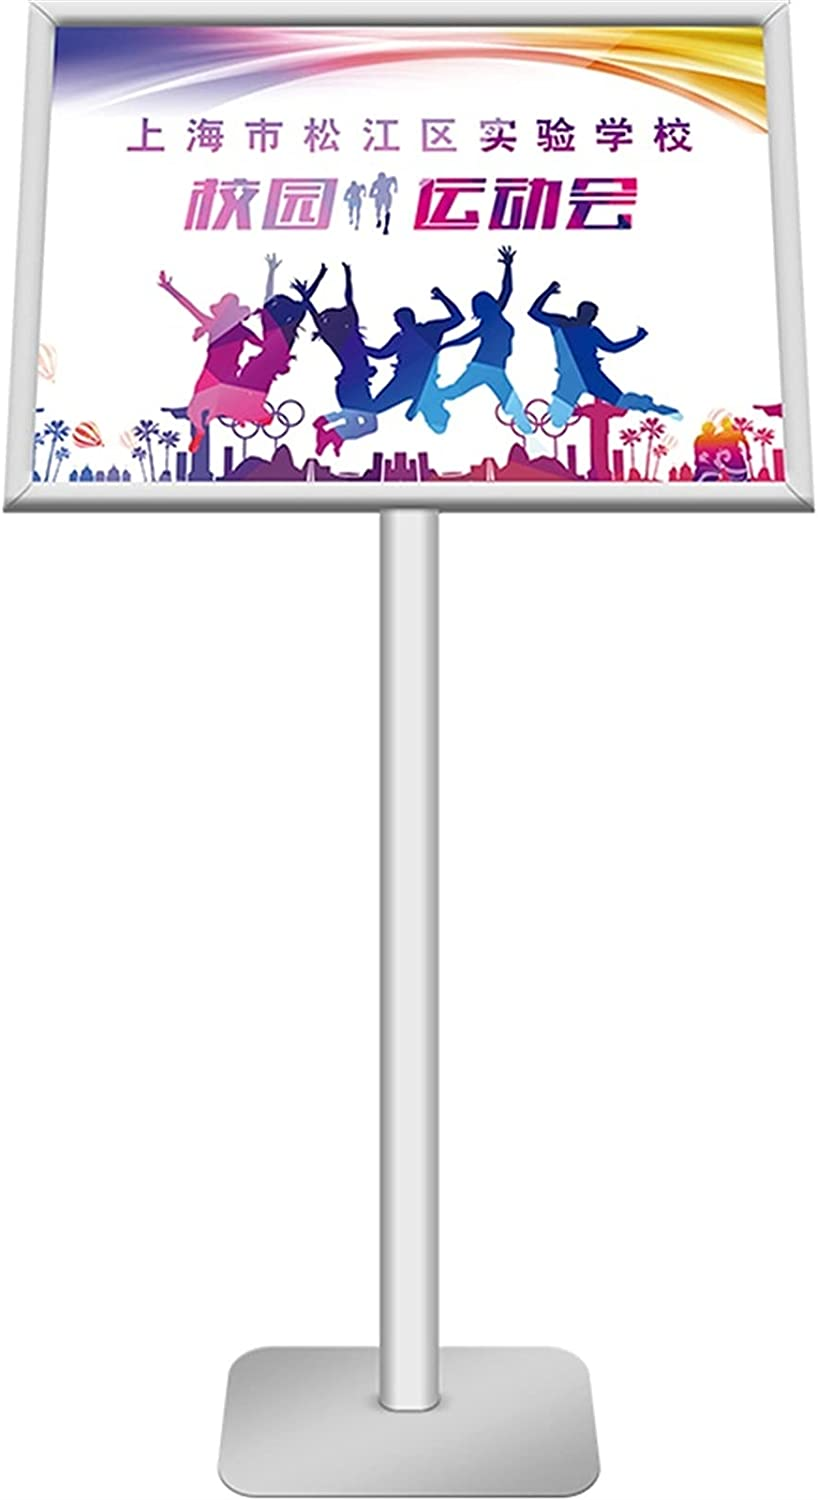 Sign favorite Holder Floor Stand T-shape Minneapolis Mall Poster Adverti A2 Display